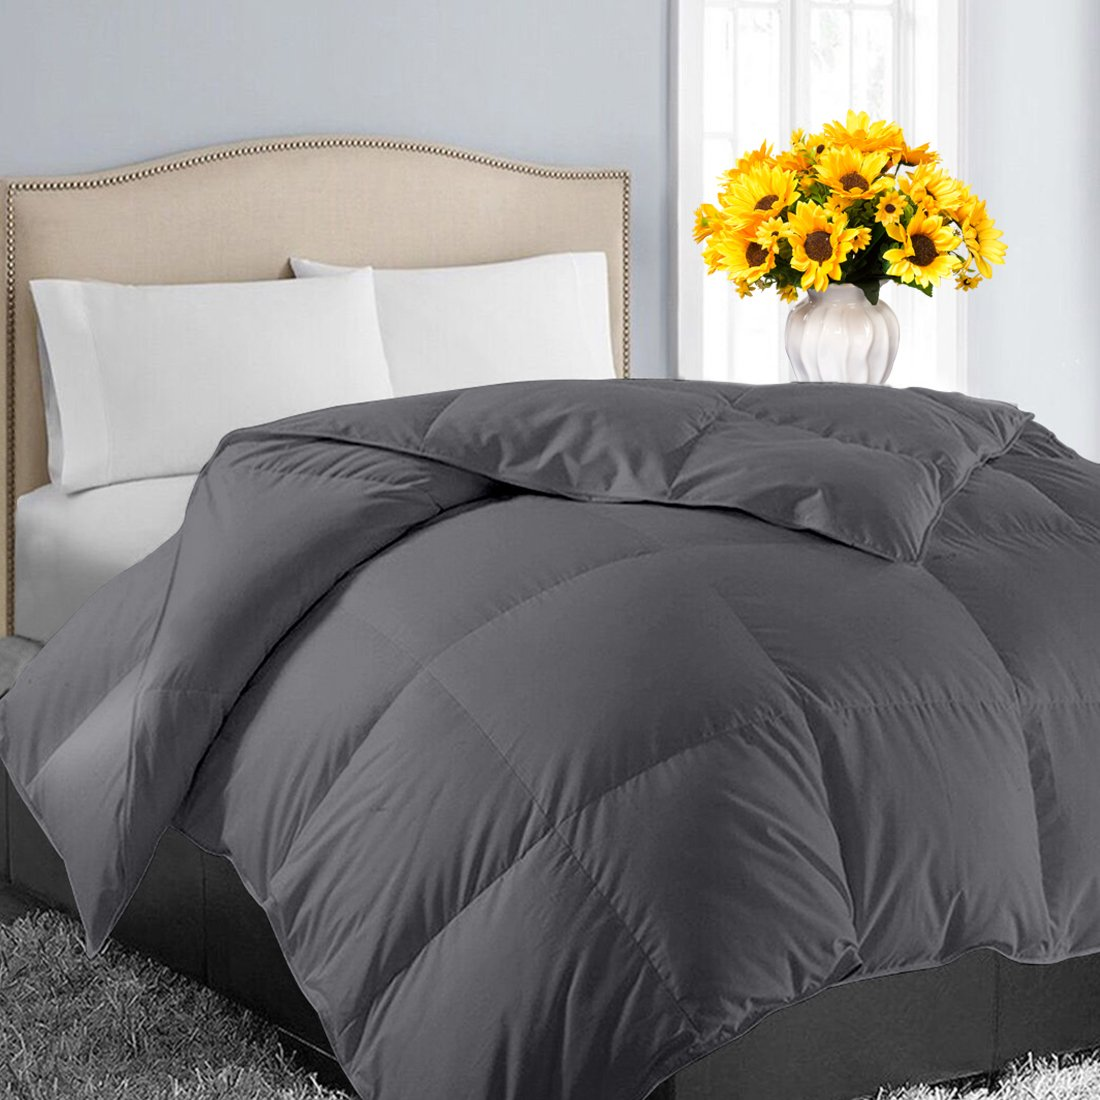 EASELAND Queen/Full Soft Quilted Down Alternative Summer Cooling Comforter Hotel Collection Reversible Duvet Insert with Corner Tab,Warm Fluffy Hypoallergenic for All Season Dark Grey,88 by 88 Inches